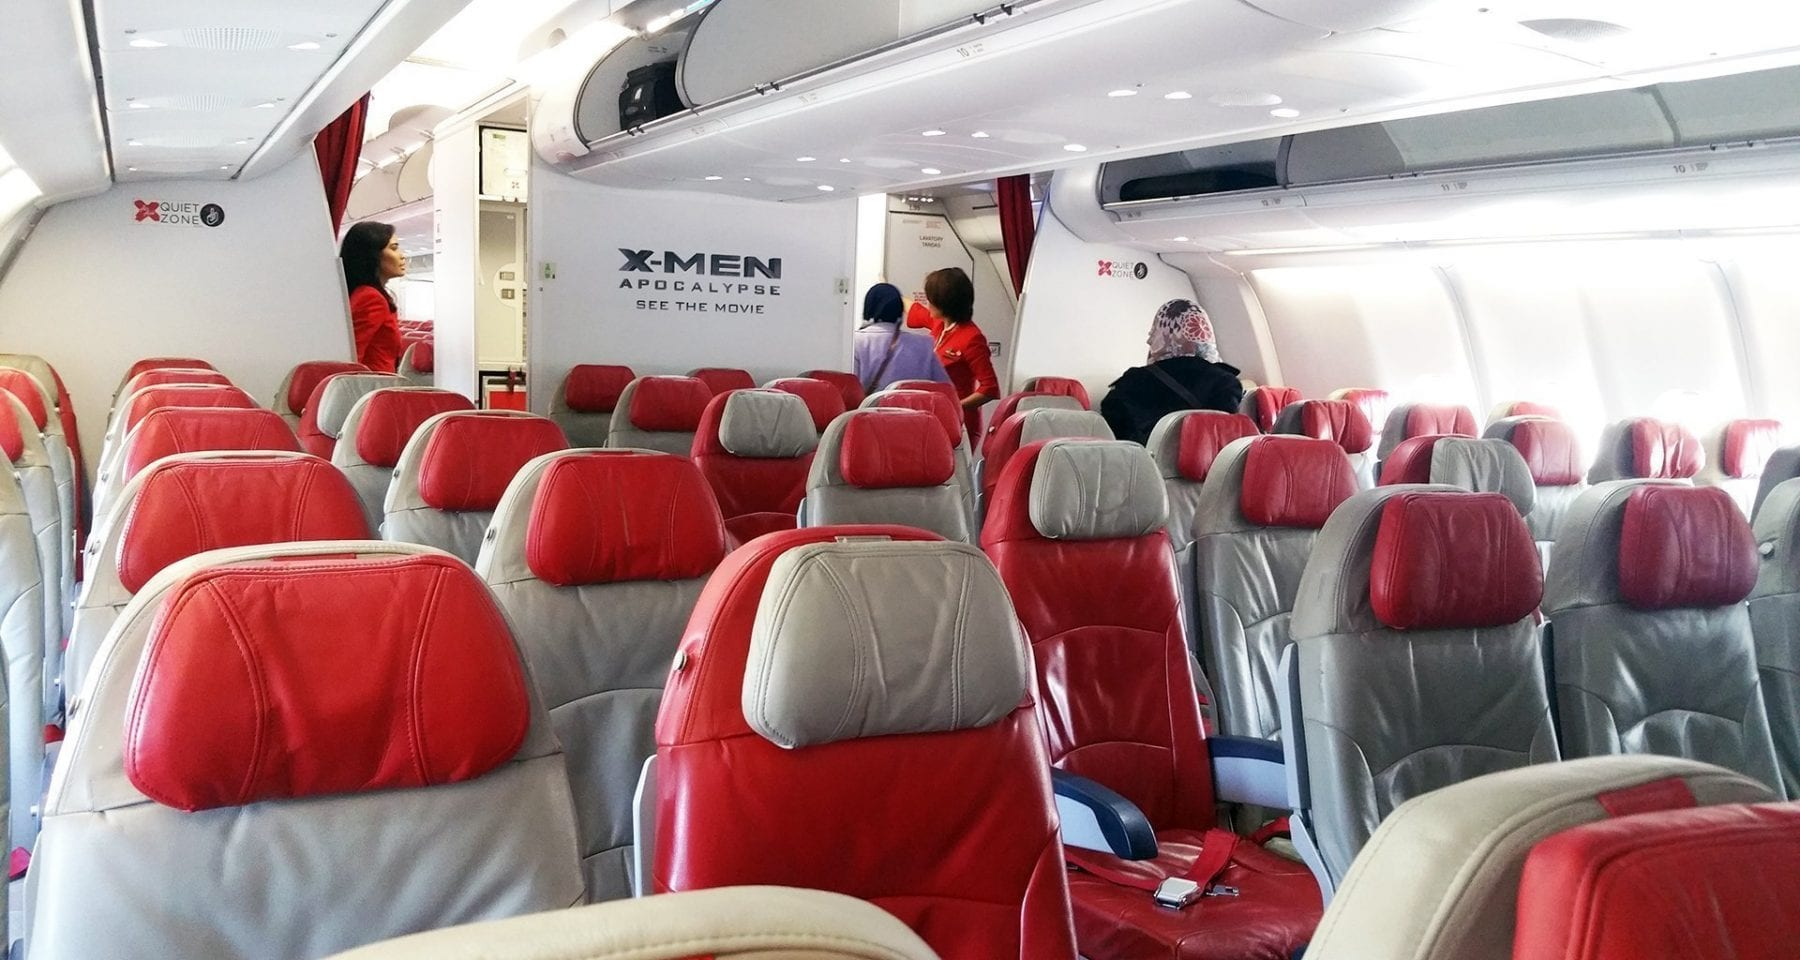 Air Asia A330 economy class cabin